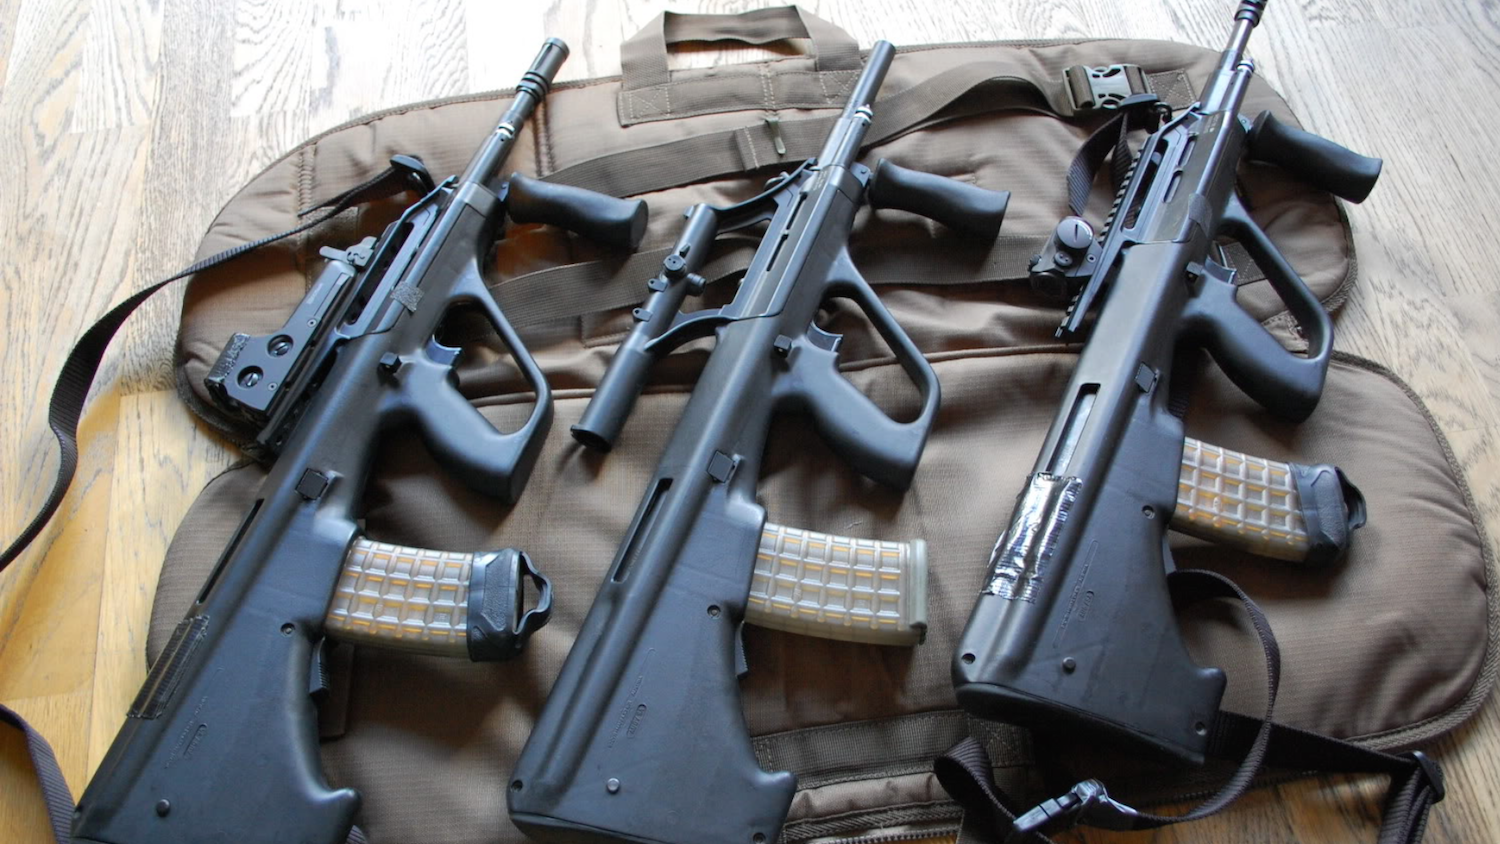 The Steyr AUG: Austrian Engineering in Arms